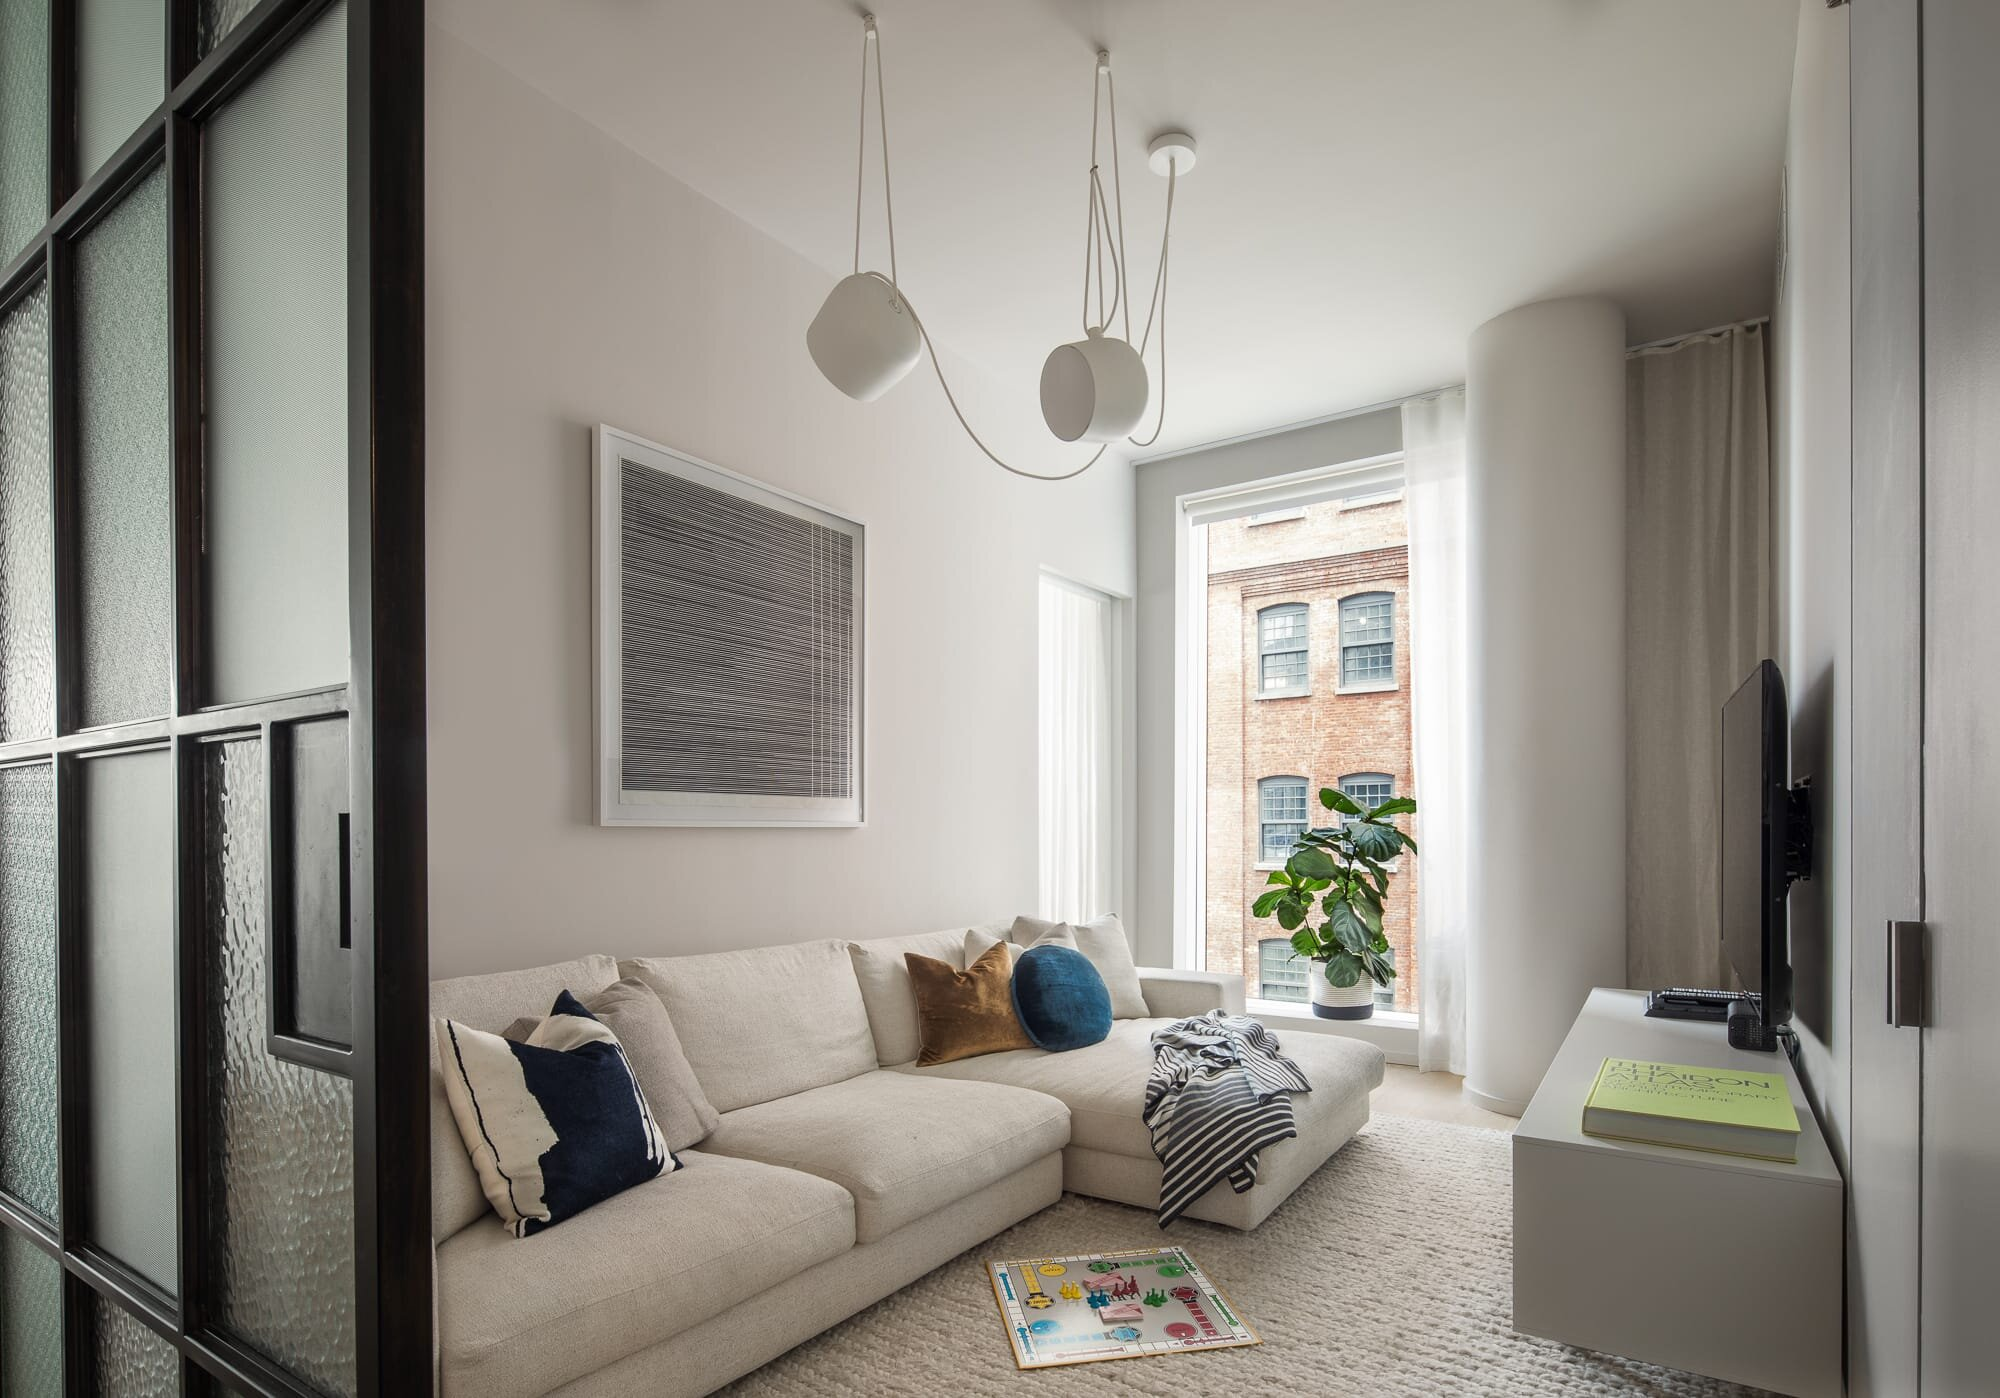 Guest room designed by Alloy Development